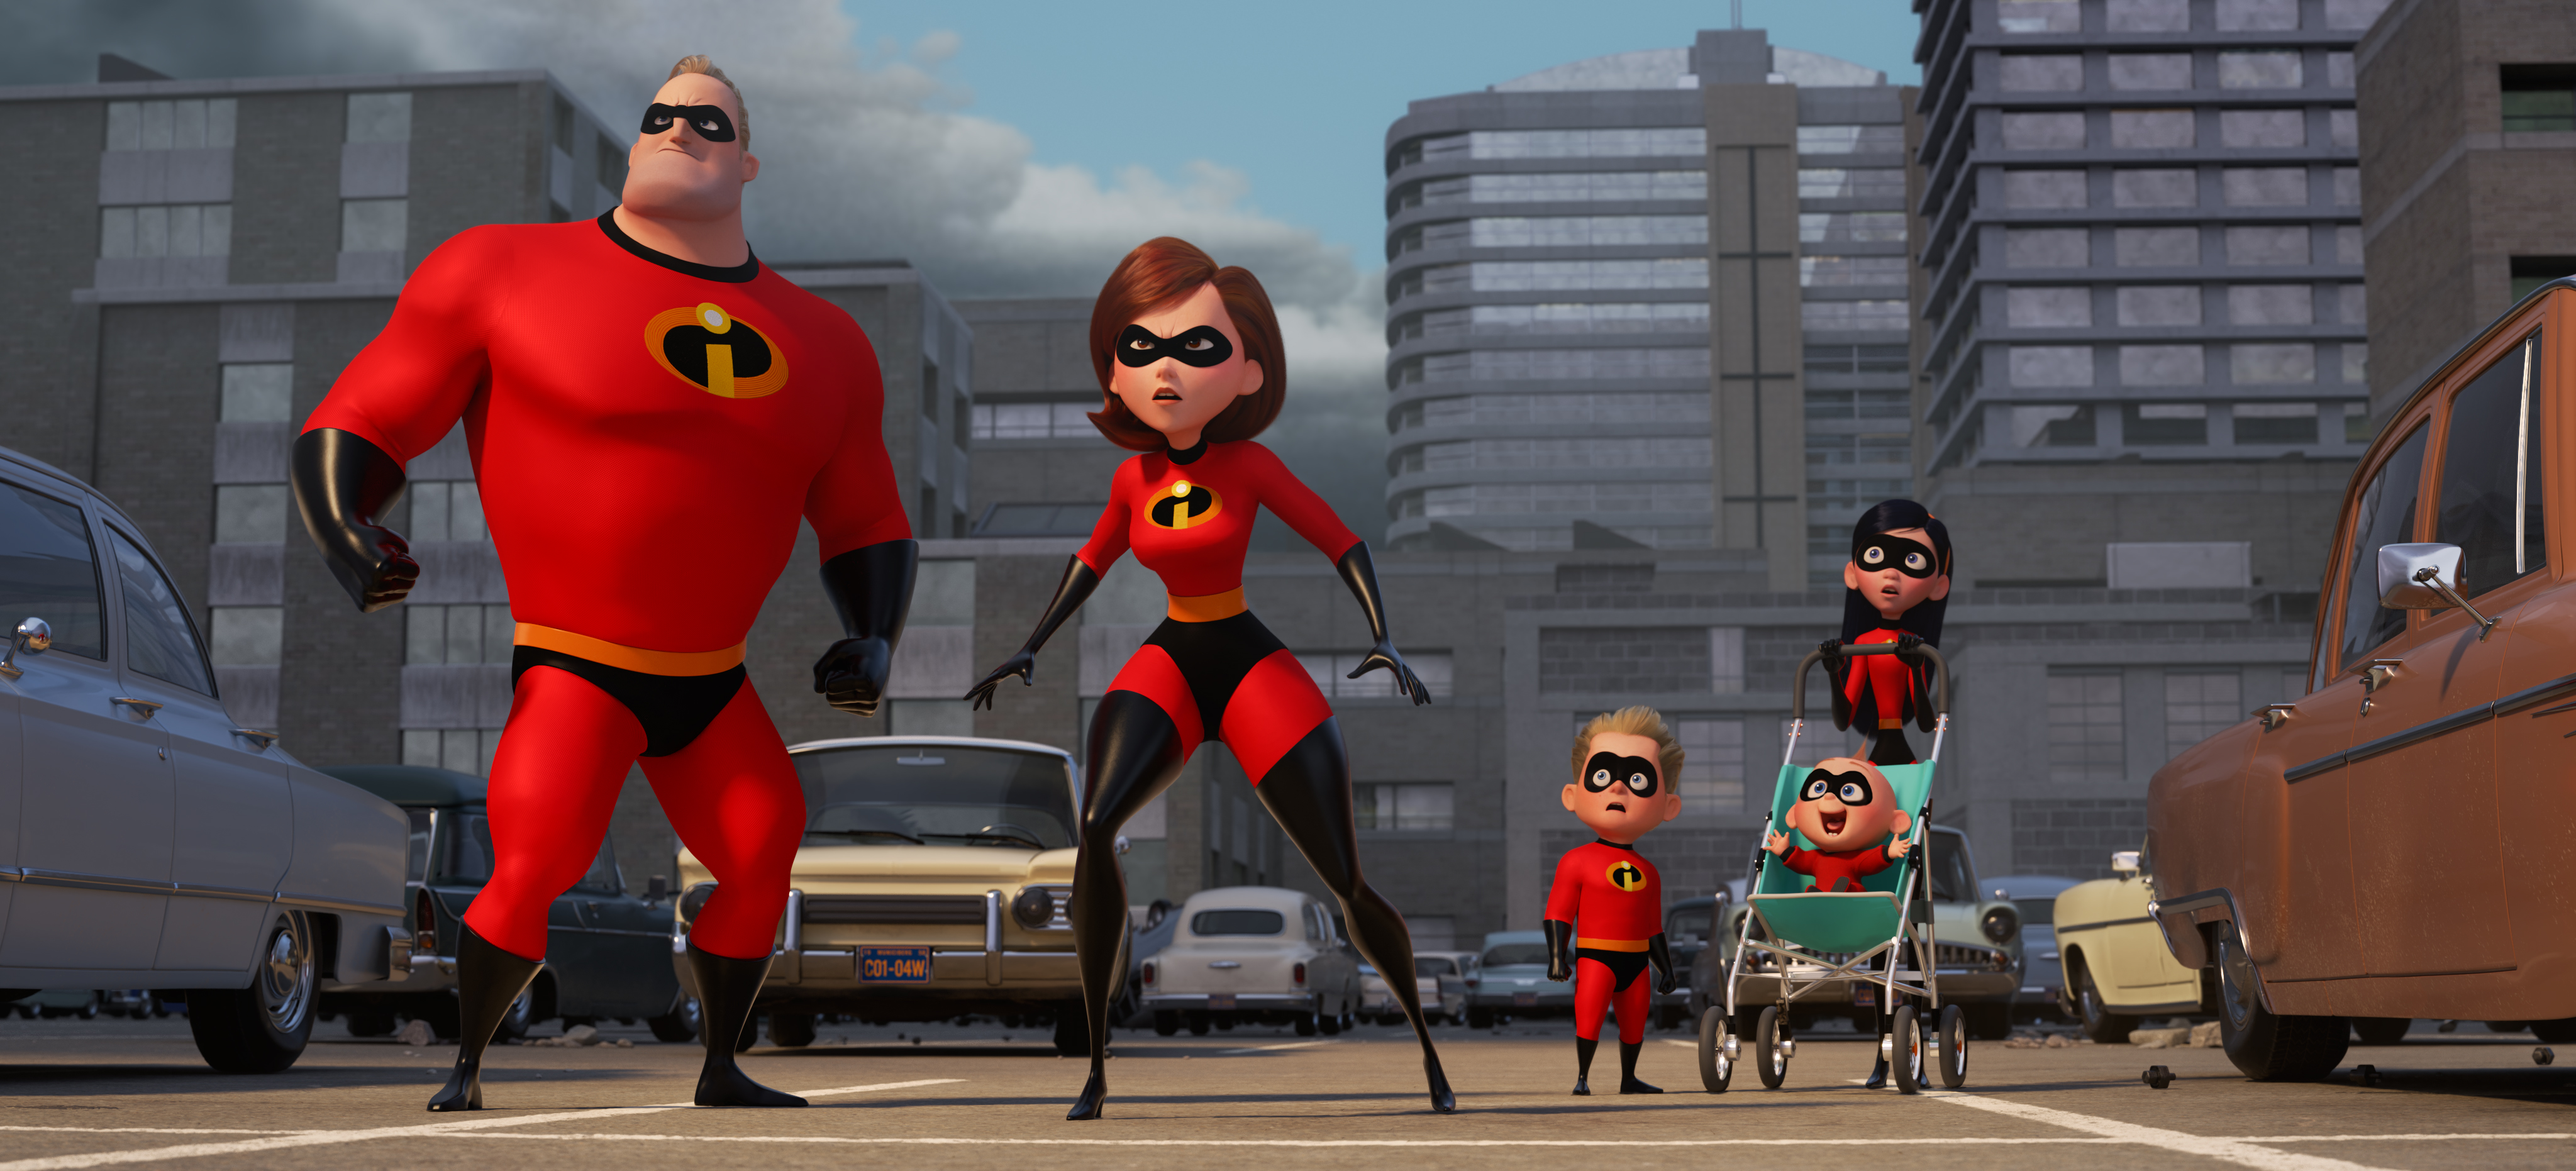 Incredibles 2 Announces Along with the rest of EIFF Best of the Fest